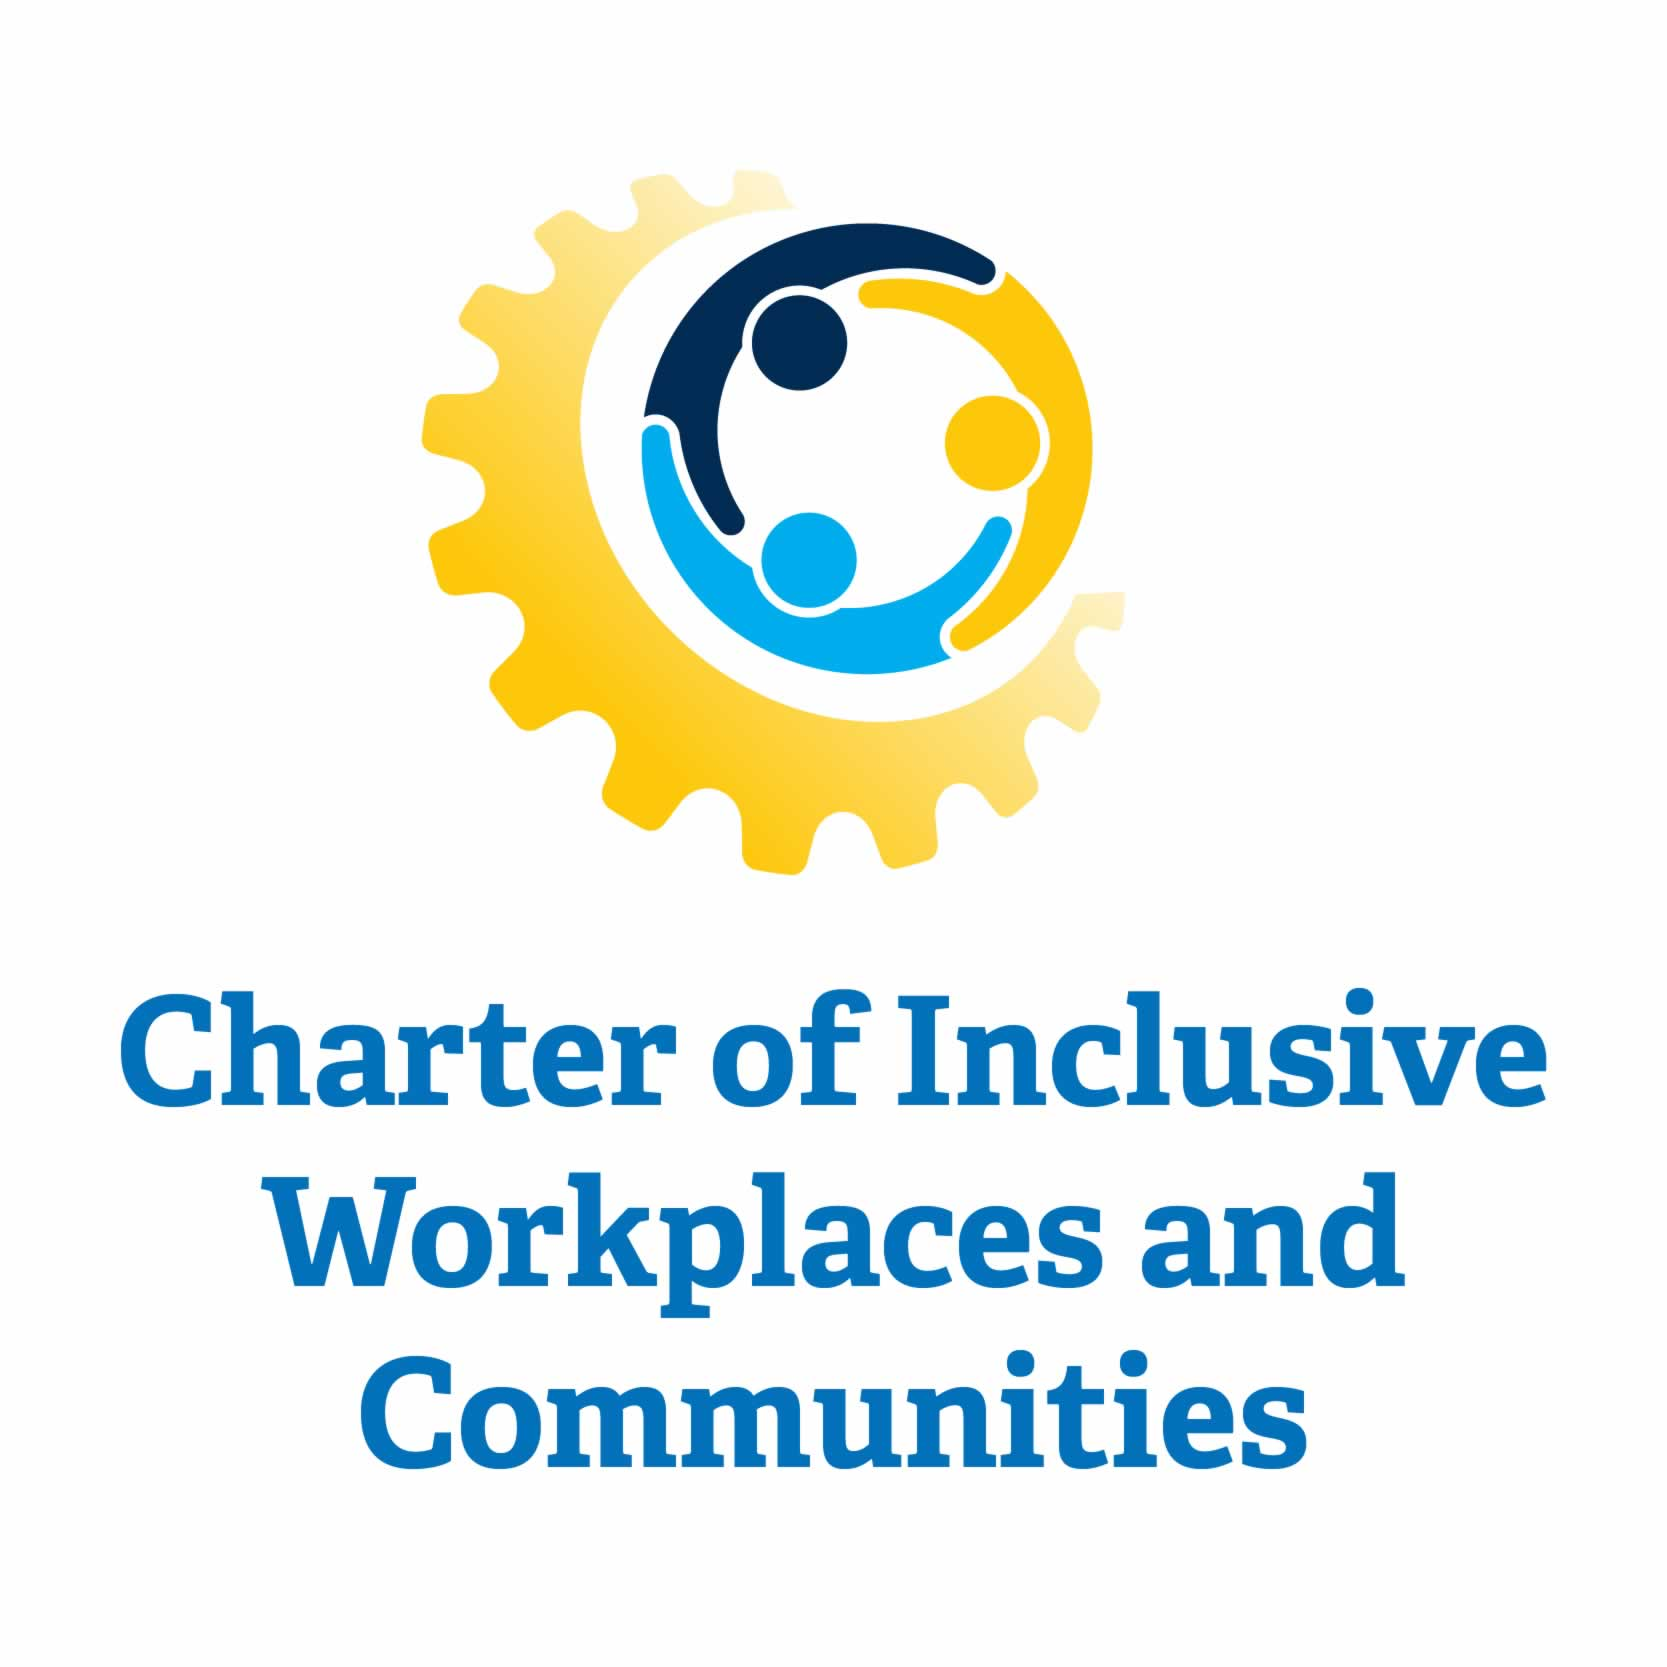 Charter of Inclusive Workplaces and Communities